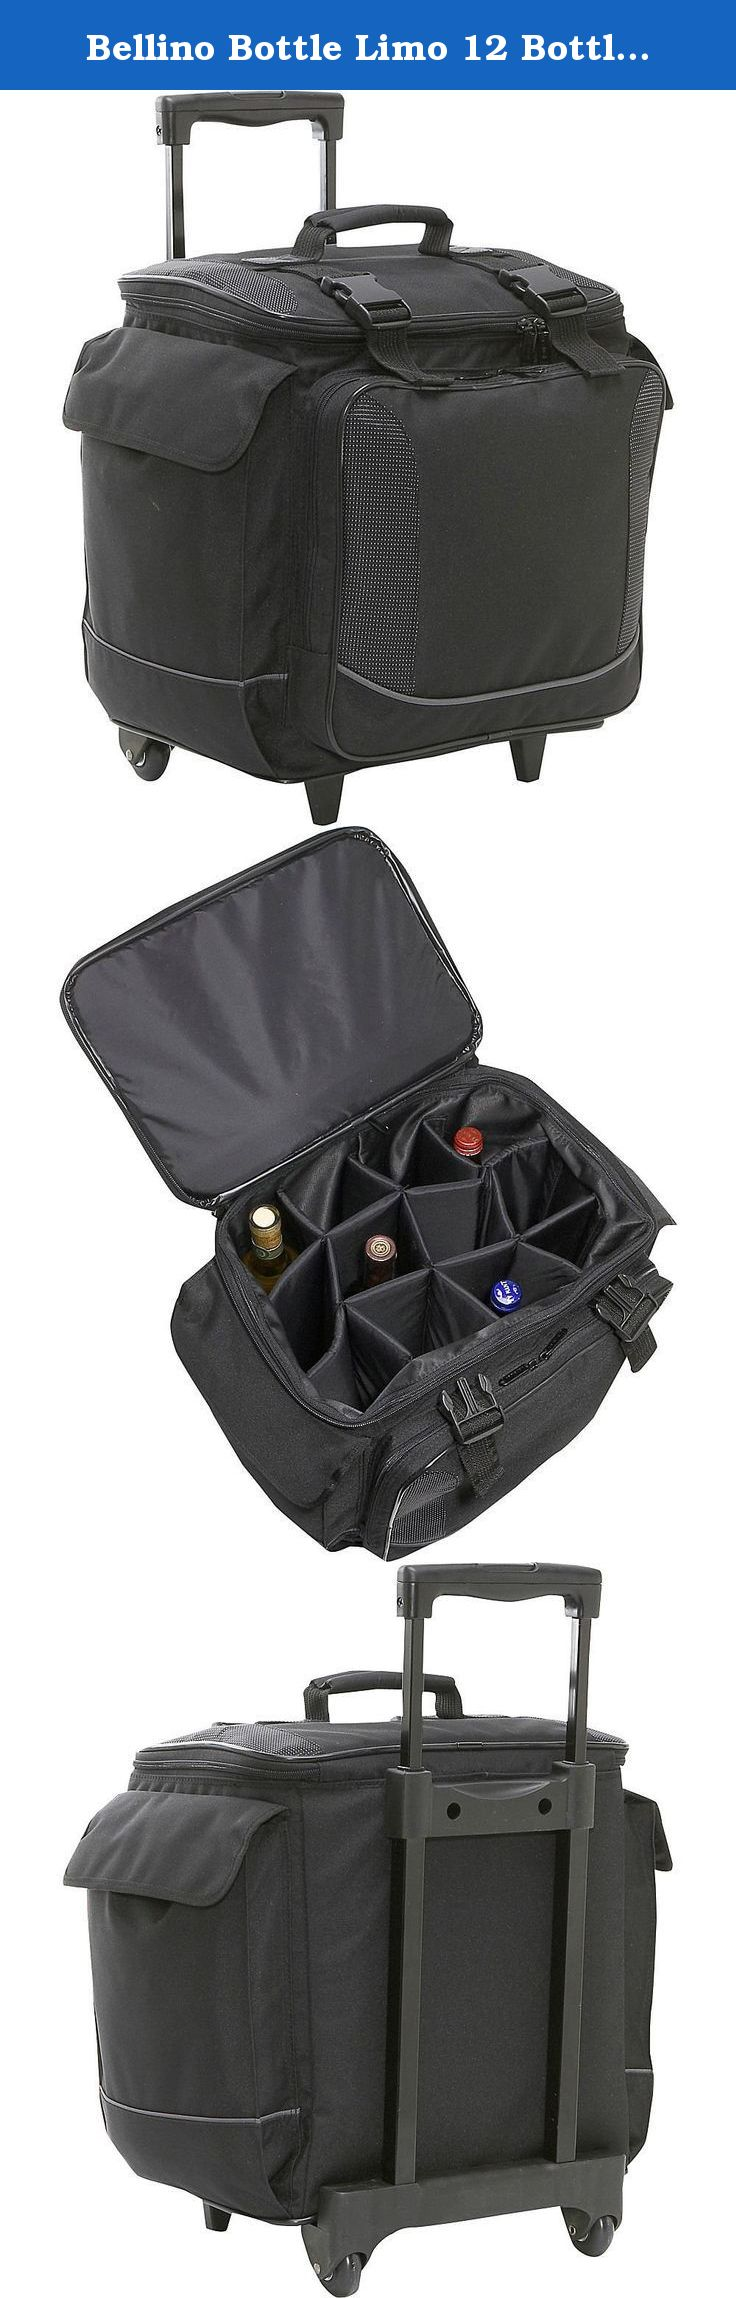 Bellino Bottle Limo 12 Bottle Insulated Wine Tote Case Wheel Travel Cooler With Organizer Black Made Of 600d Polyester This Unique W With Images Wine Bag Bags Wine Tote